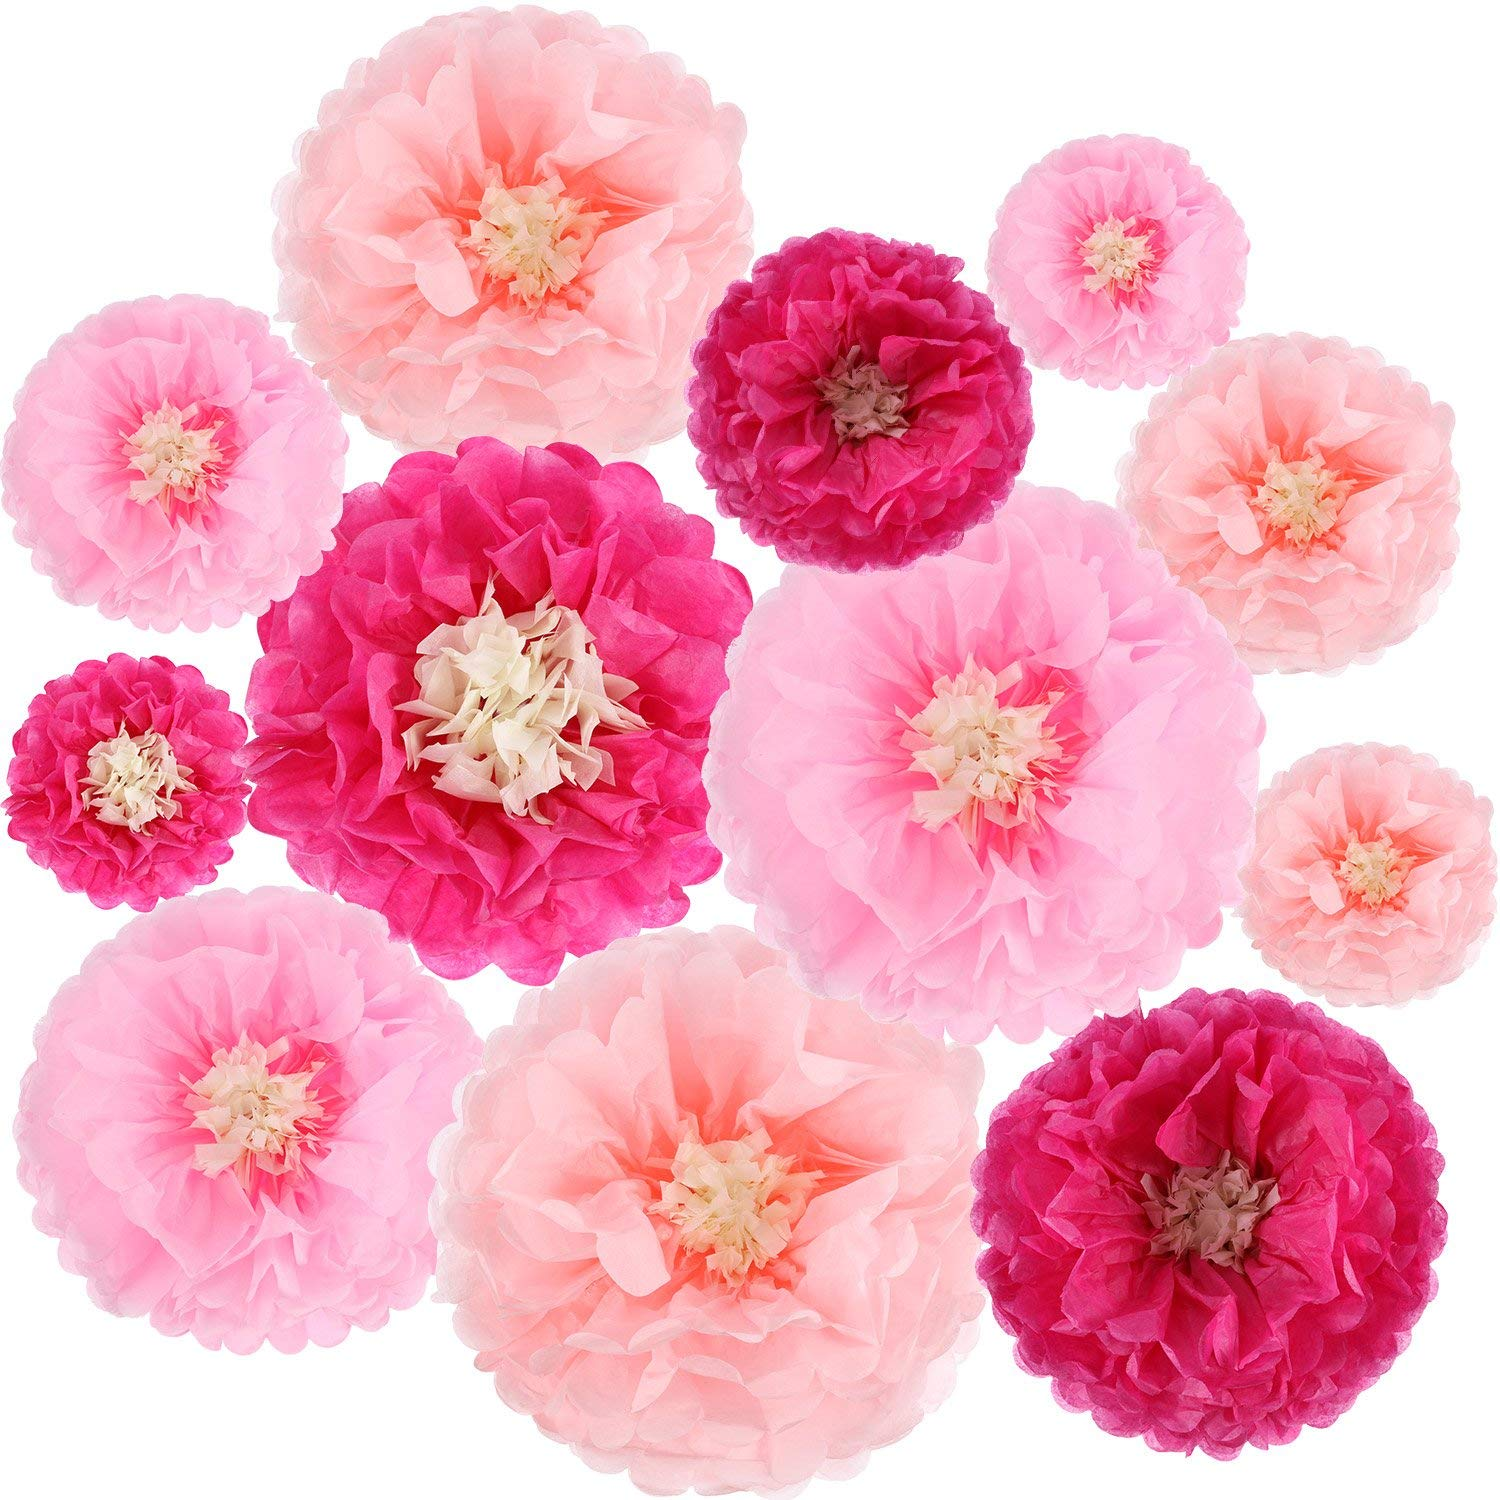 Cheap flower wall wedding find flower wall wedding deals on line at get quotations gejoy 12 pieces paper flower tissue paper chrysanth flowers diy crafting for wedding backdrop nursery wall izmirmasajfo